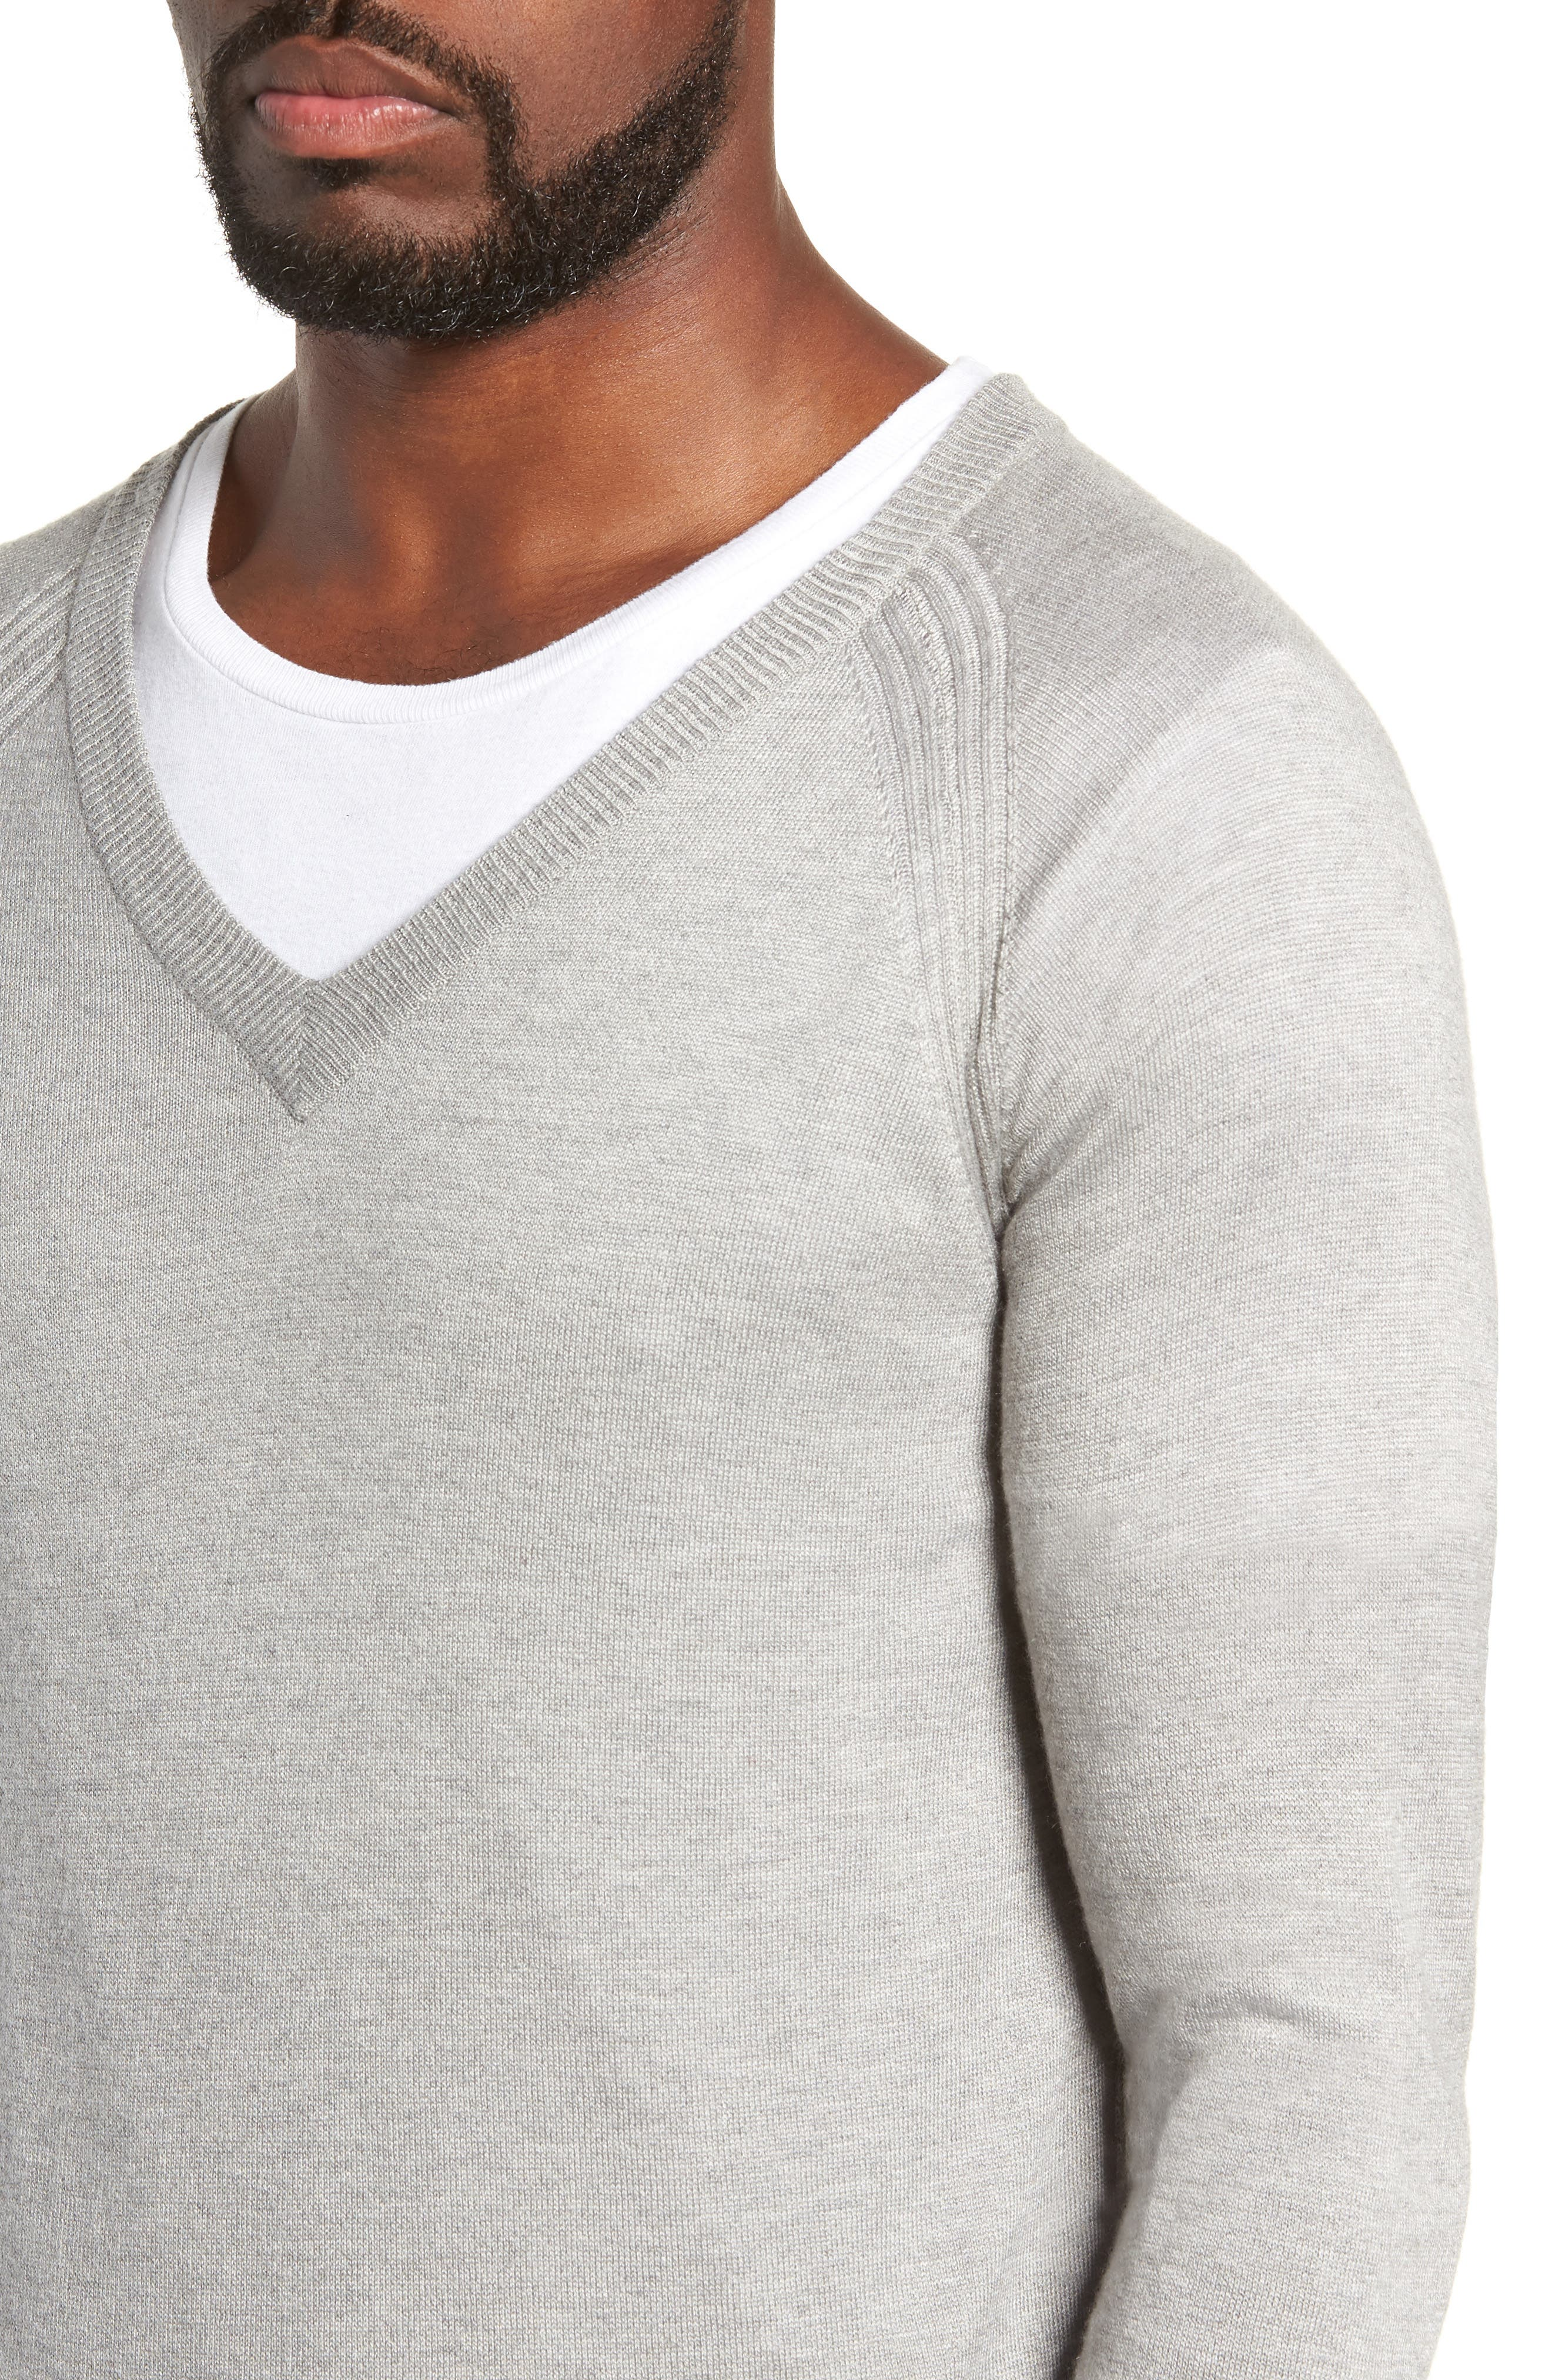 Salinas Cash V-Neck Sweater,                             Alternate thumbnail 4, color,                             GREY HEATHER